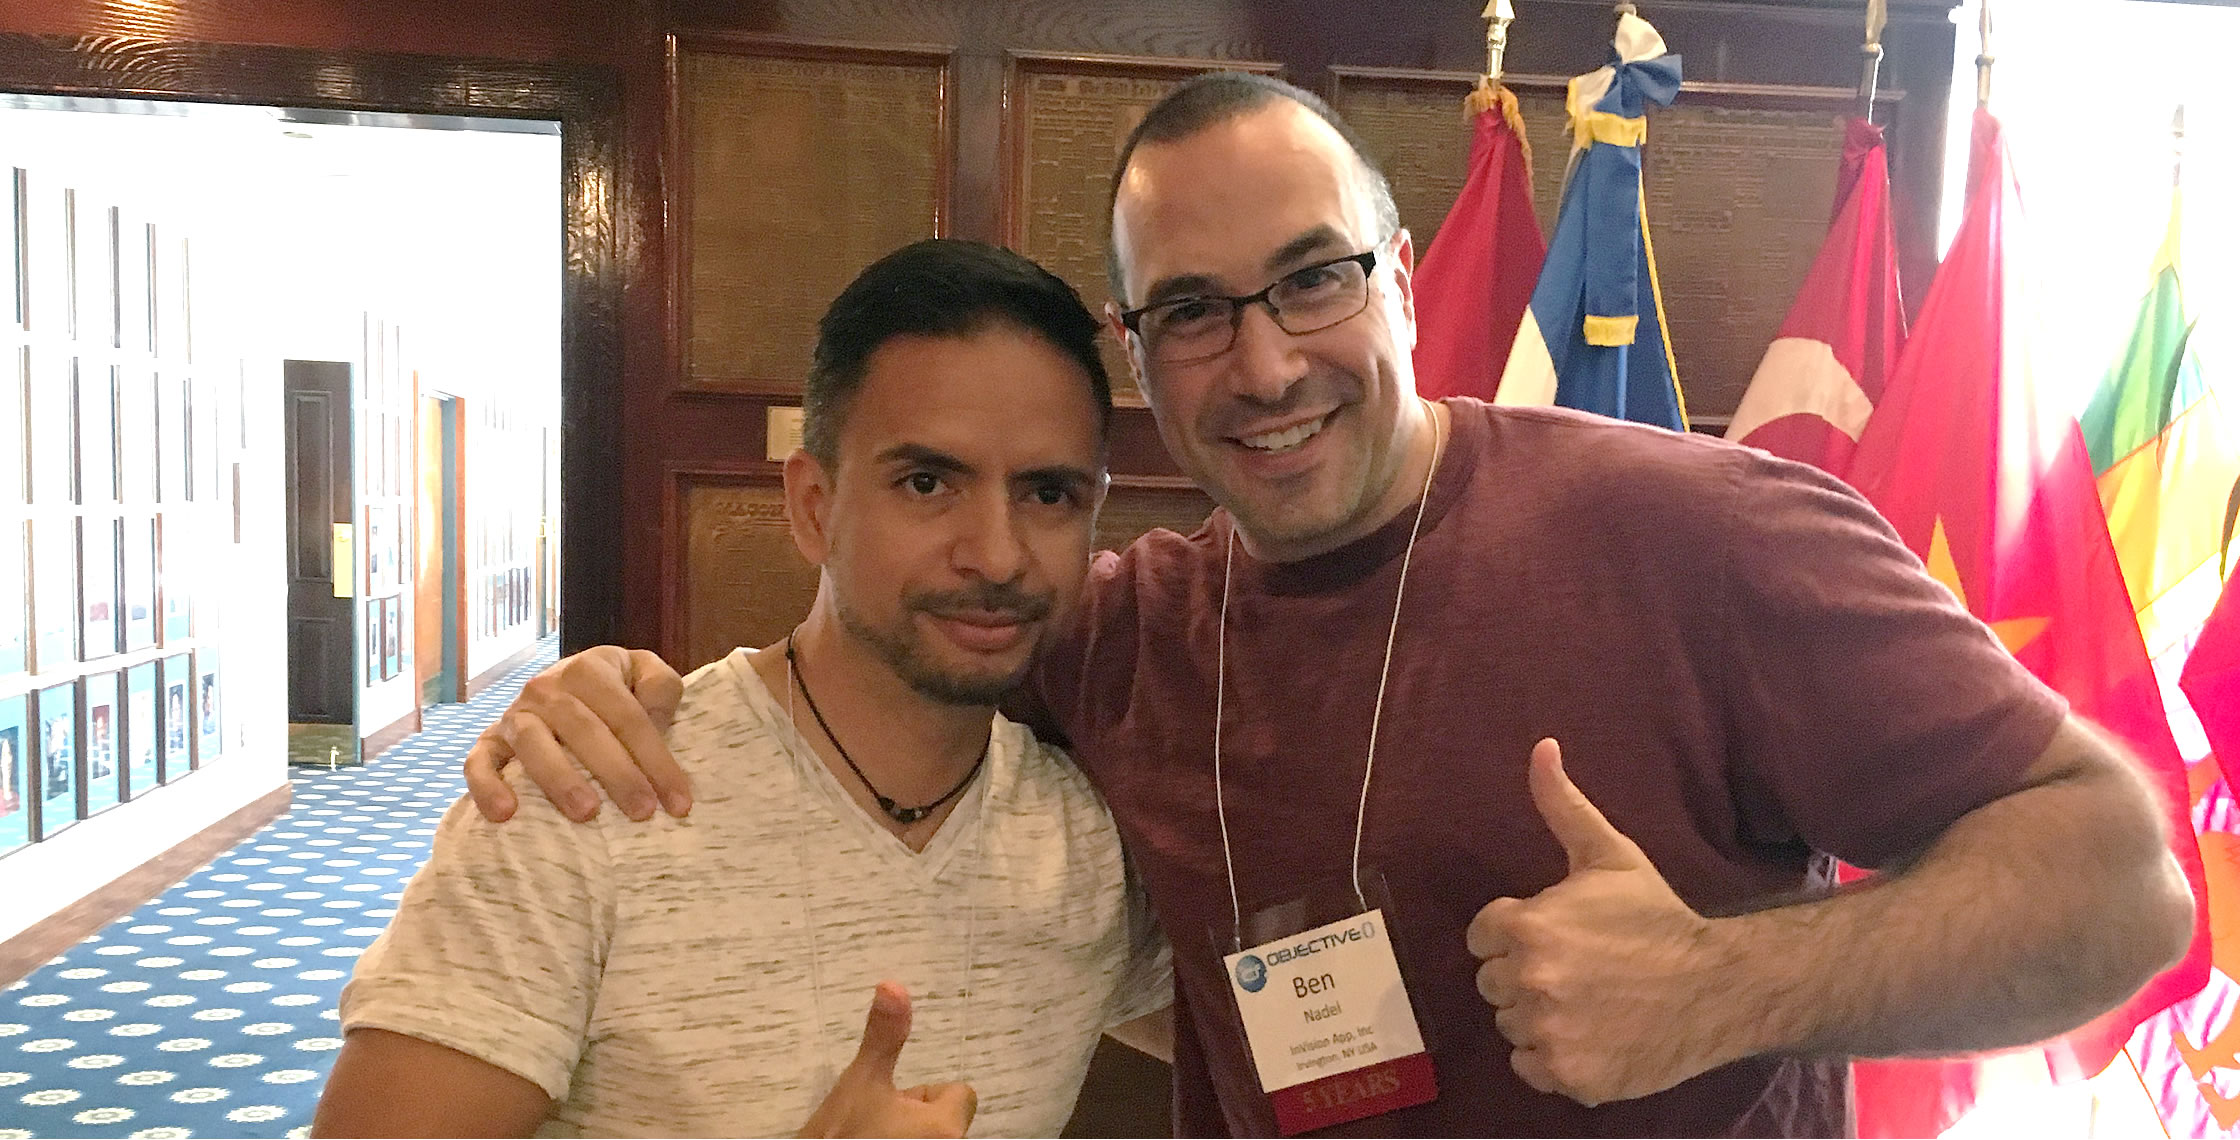 Ben Nadel at cf.Objective() 2017 (Washington, D.C.) with: Raul Delgado